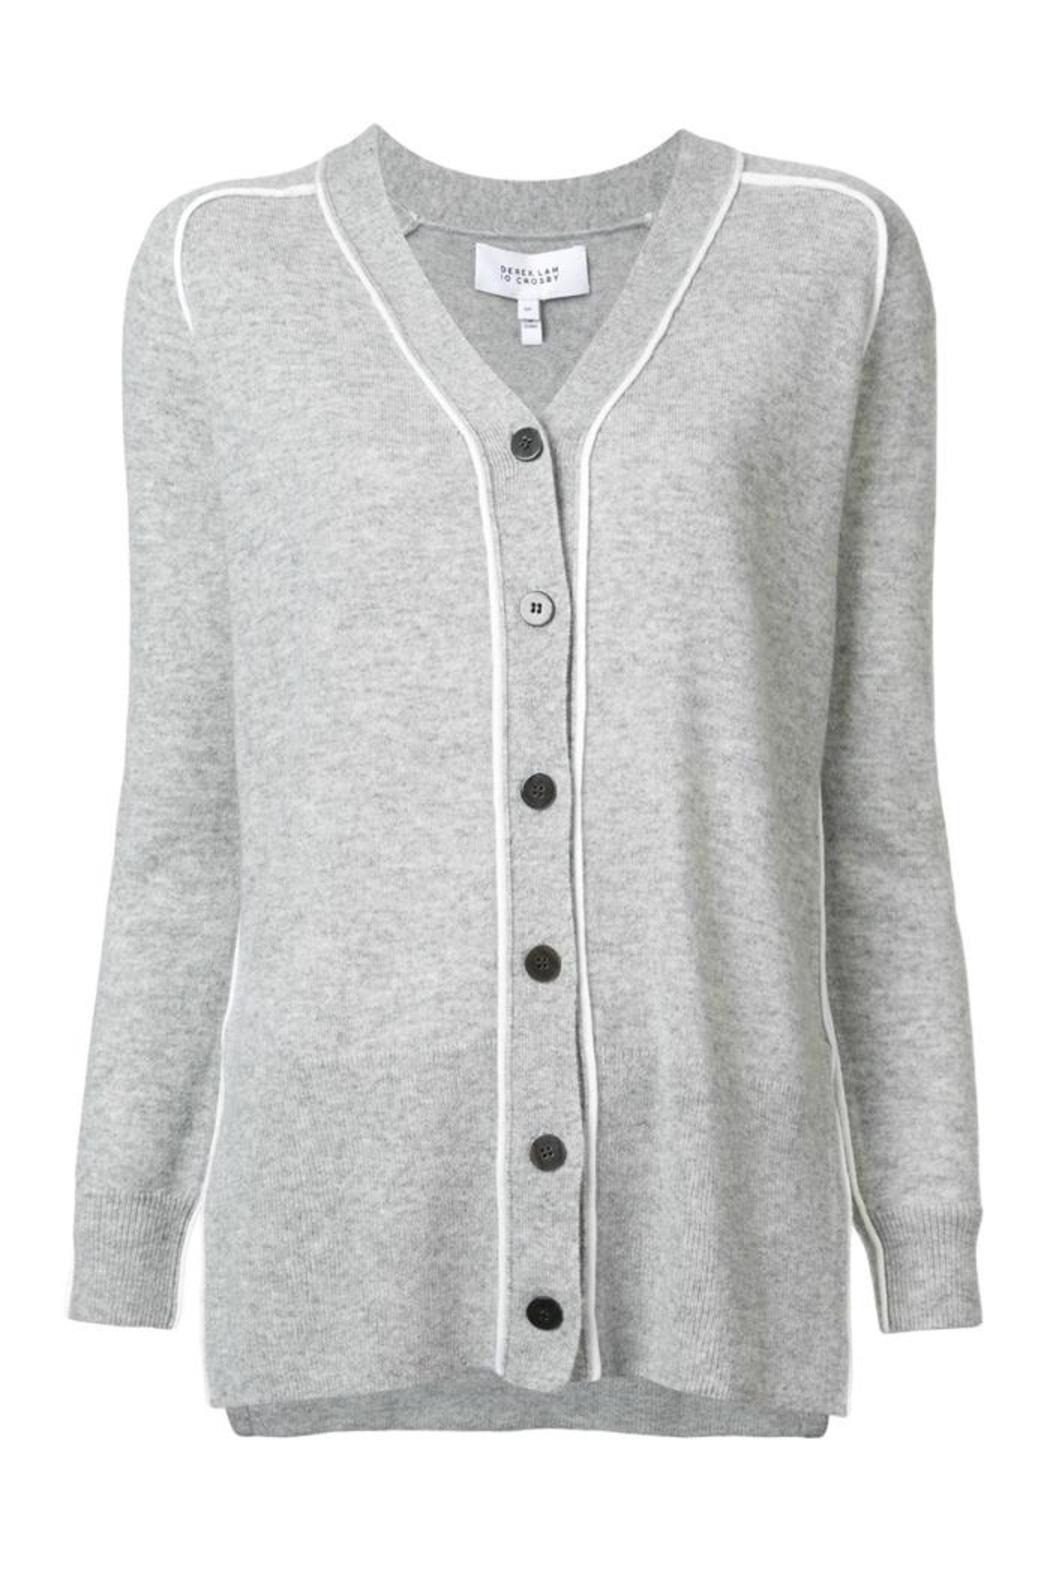 Derek Lam 10 Crosby Cashmere Button-Down Cardigan from Canada by ...